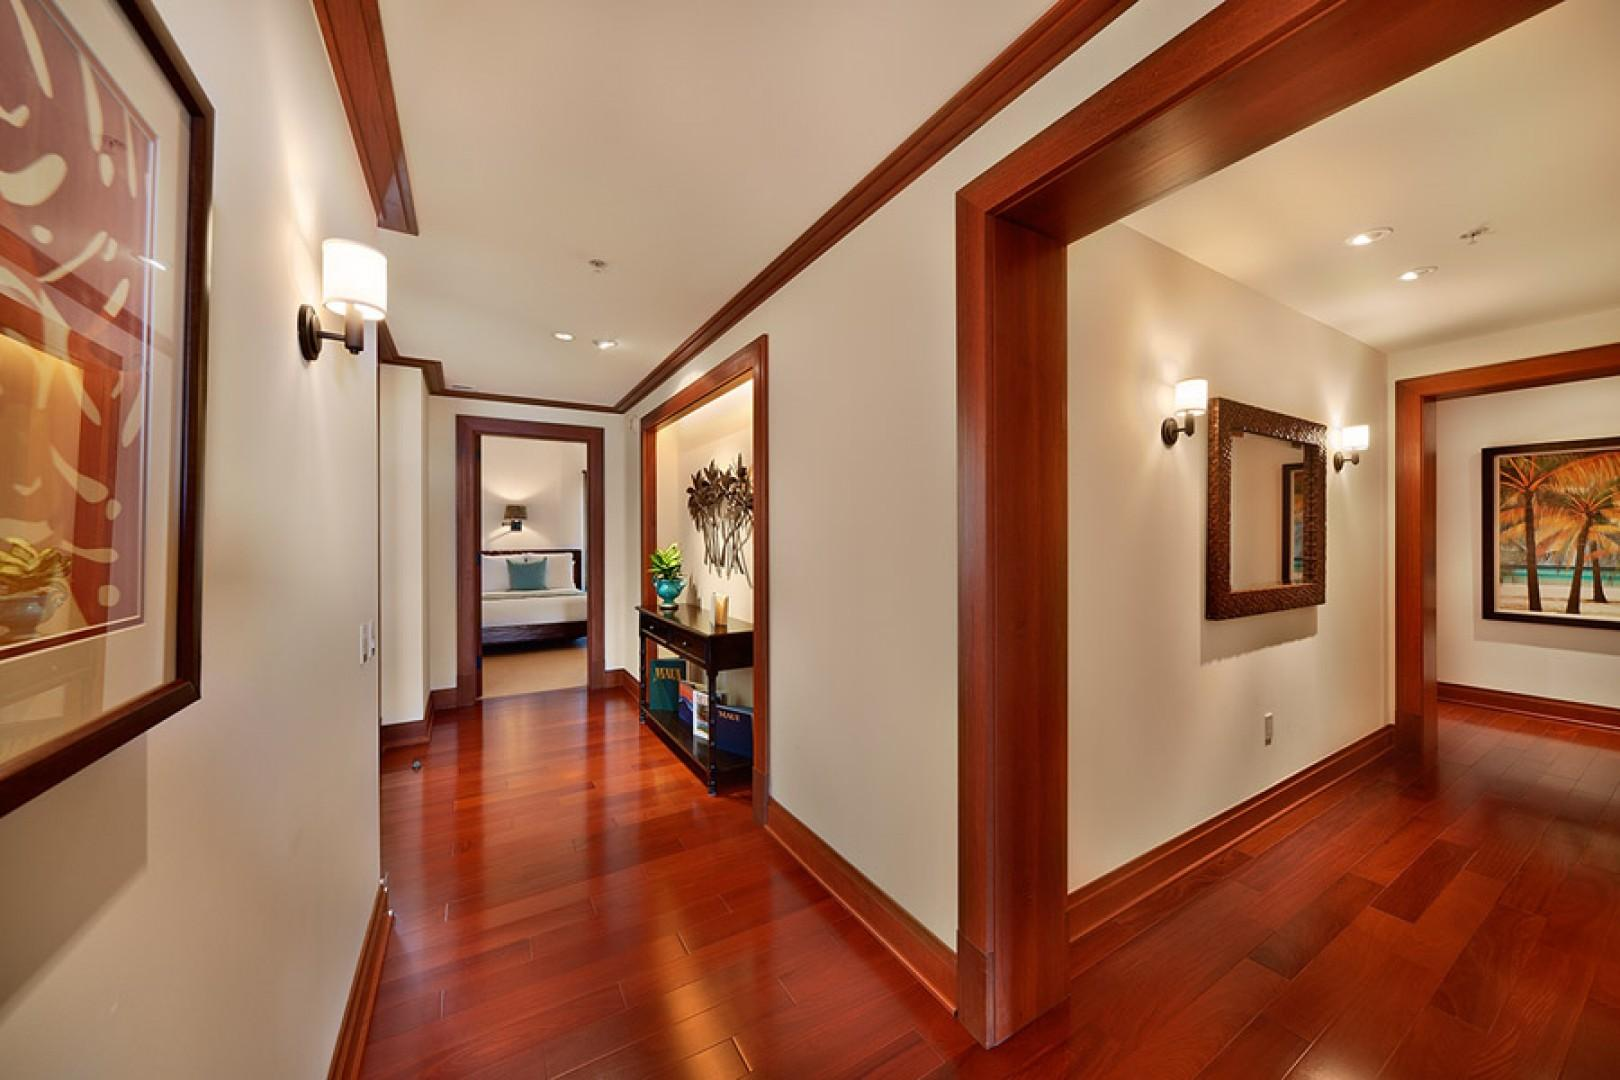 Sea Mist Villa 2403 - Entry Area and Hallways with Richly Colored Hardwood Floors Both Lead to the Front Door and Bedrooms